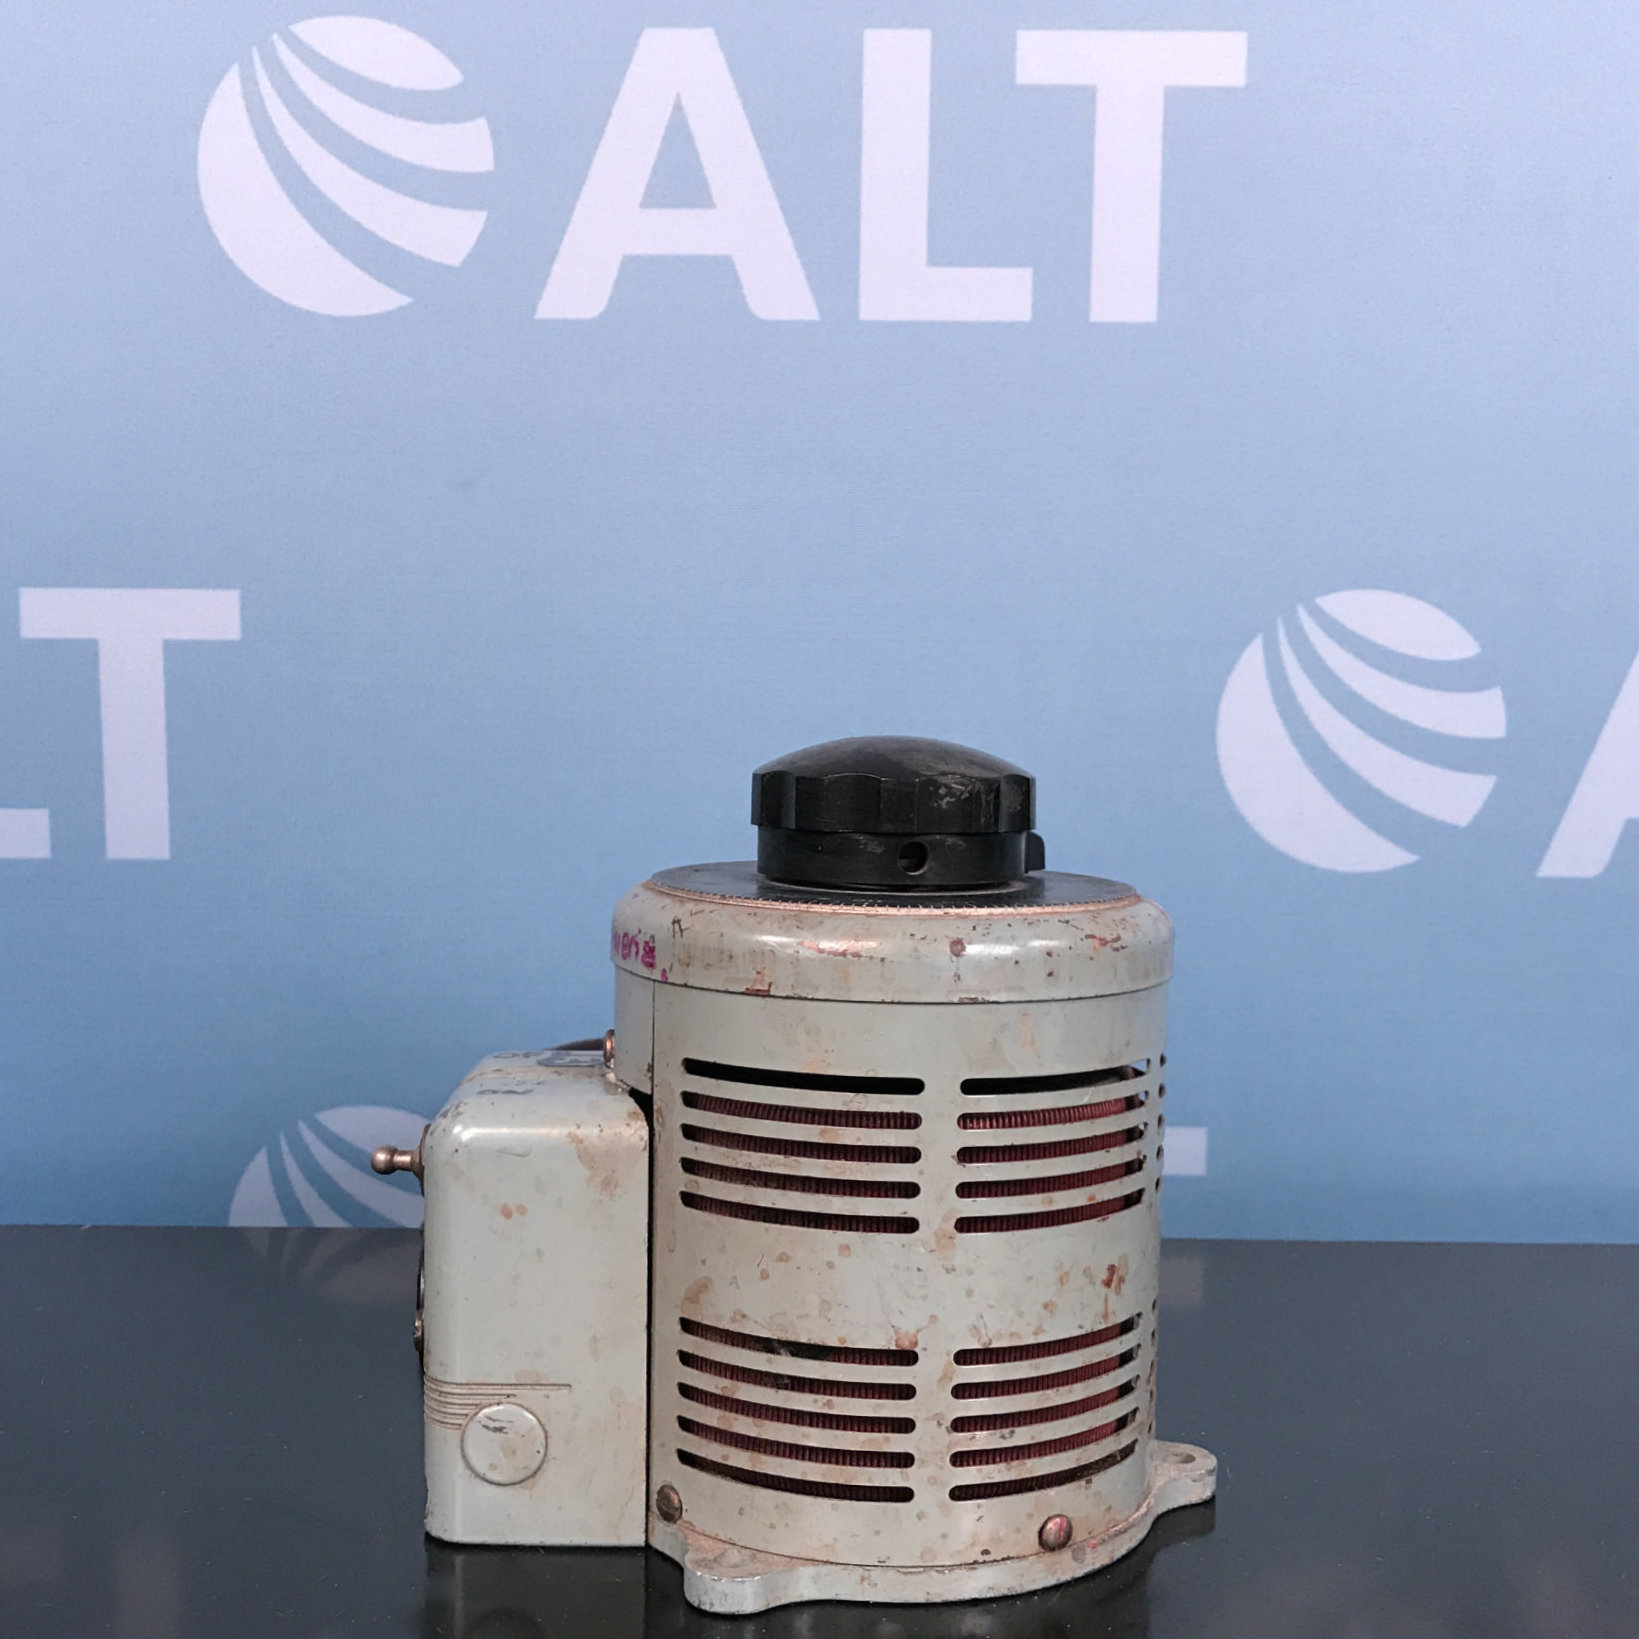 Electric Type S-1138 Powerstat Variable Transformer Name